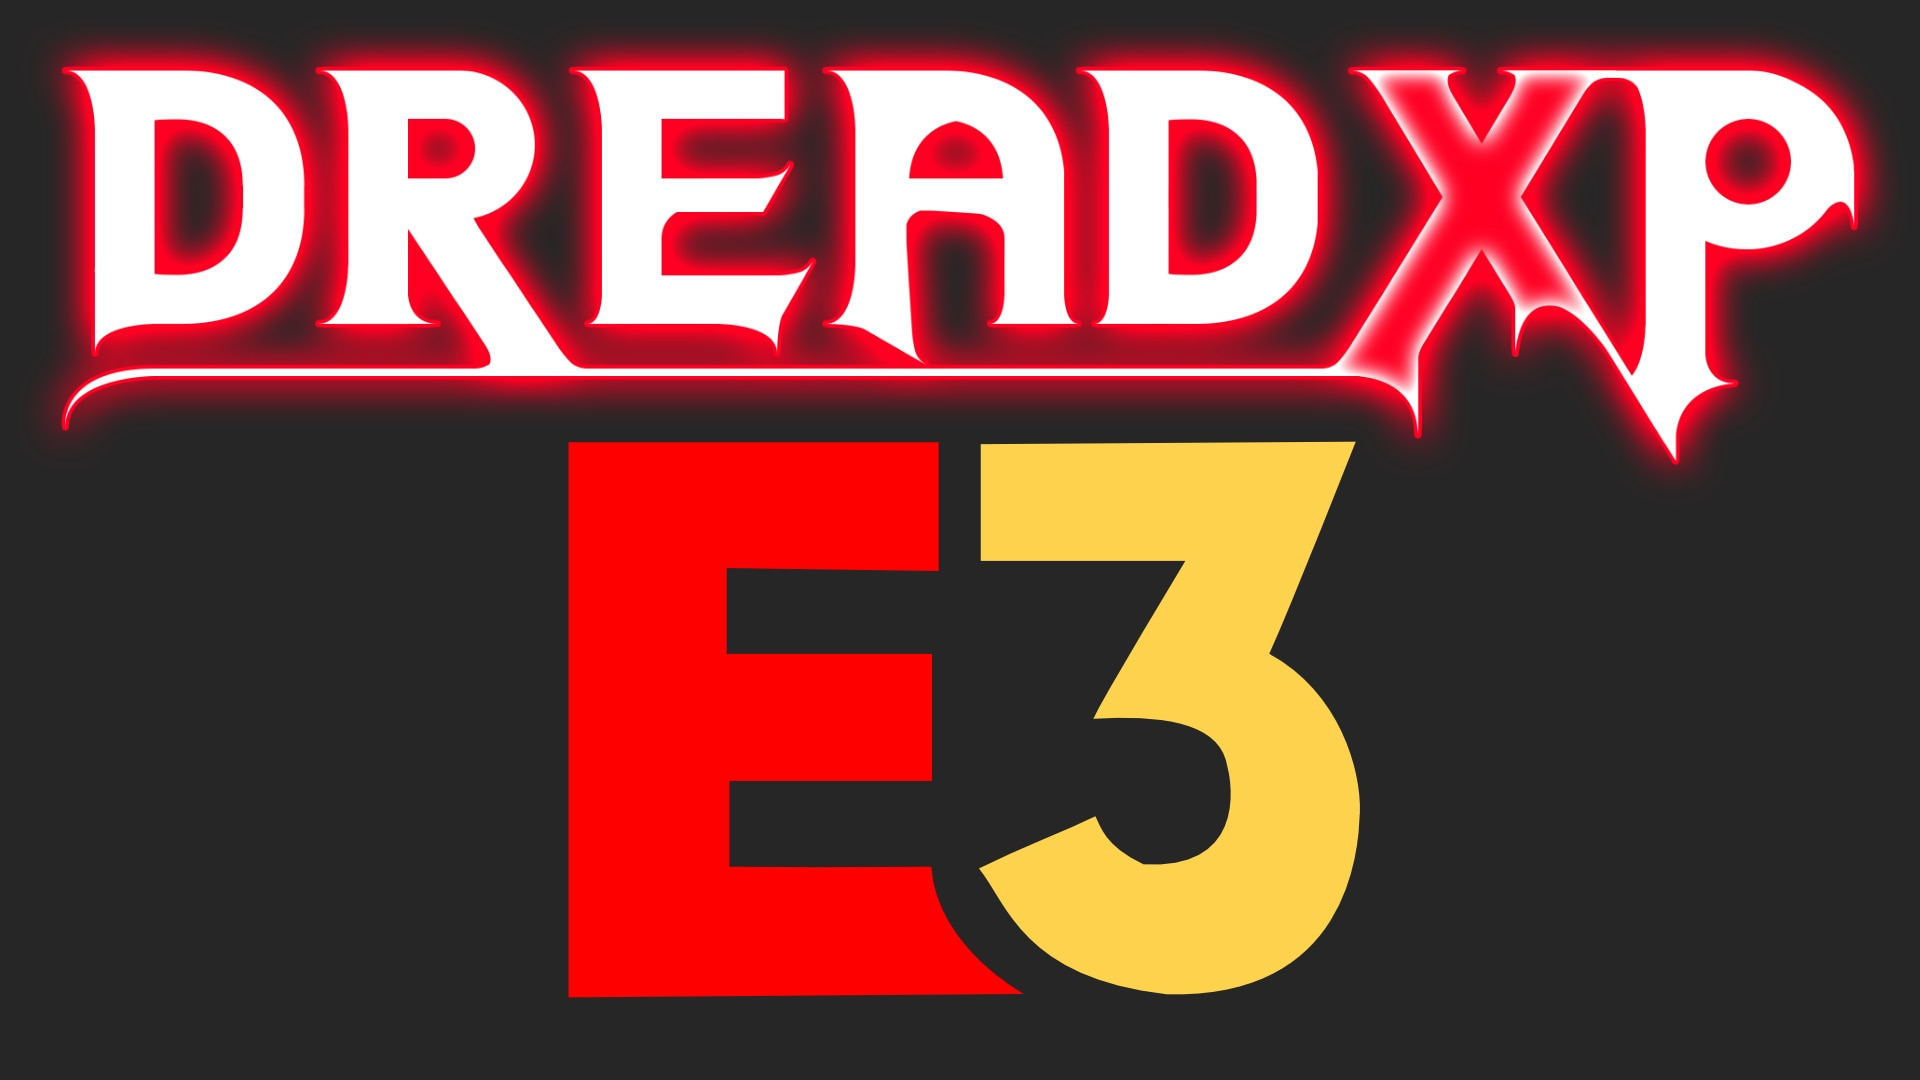 Dreadxp@e3 - E3 Trailers Day 1 - Did You See These Games?